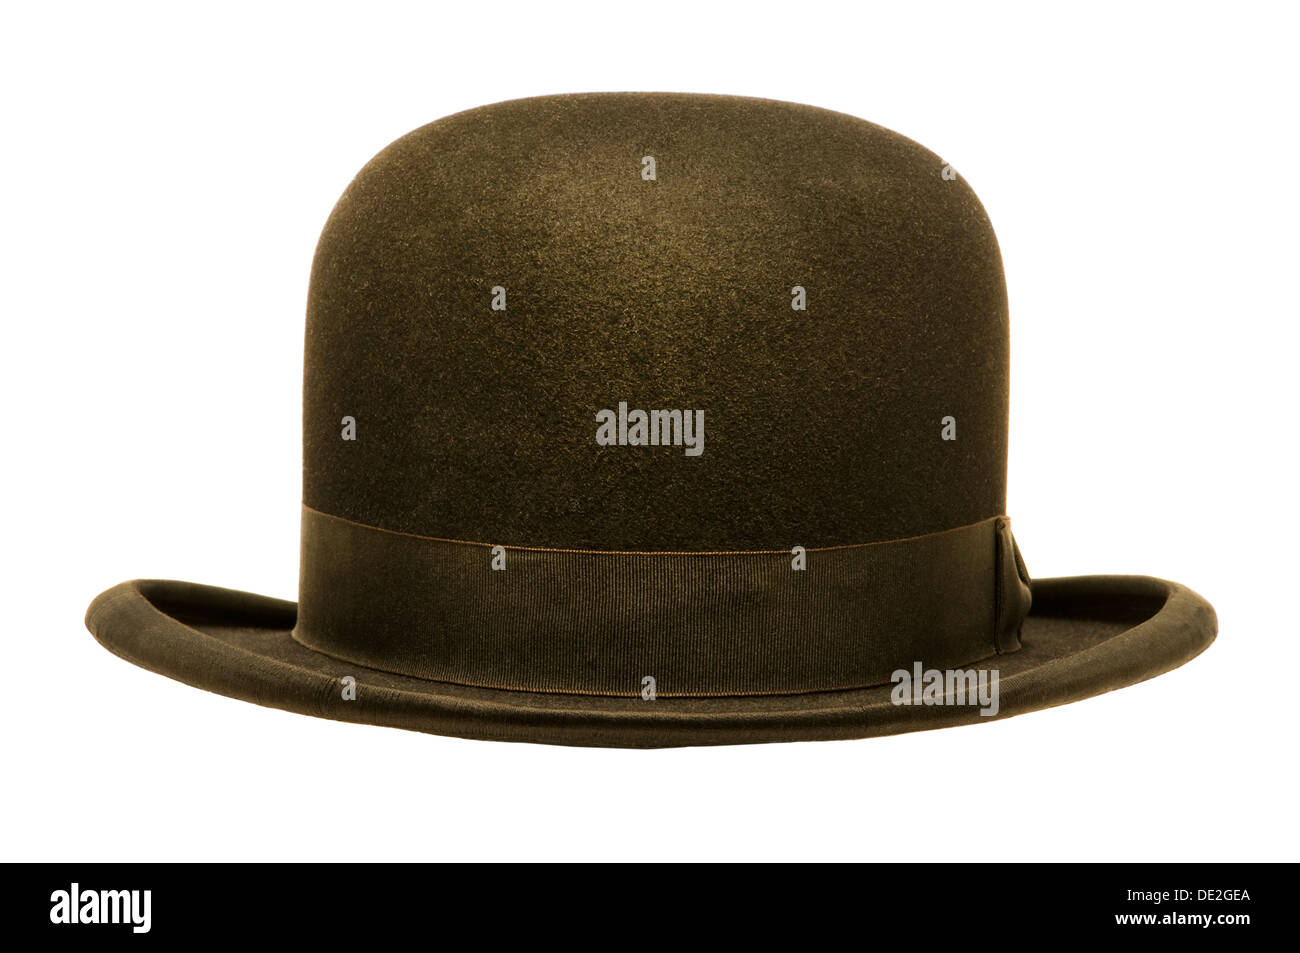 e94dce728ce A black derby or bowler hat isolated against a white background ...